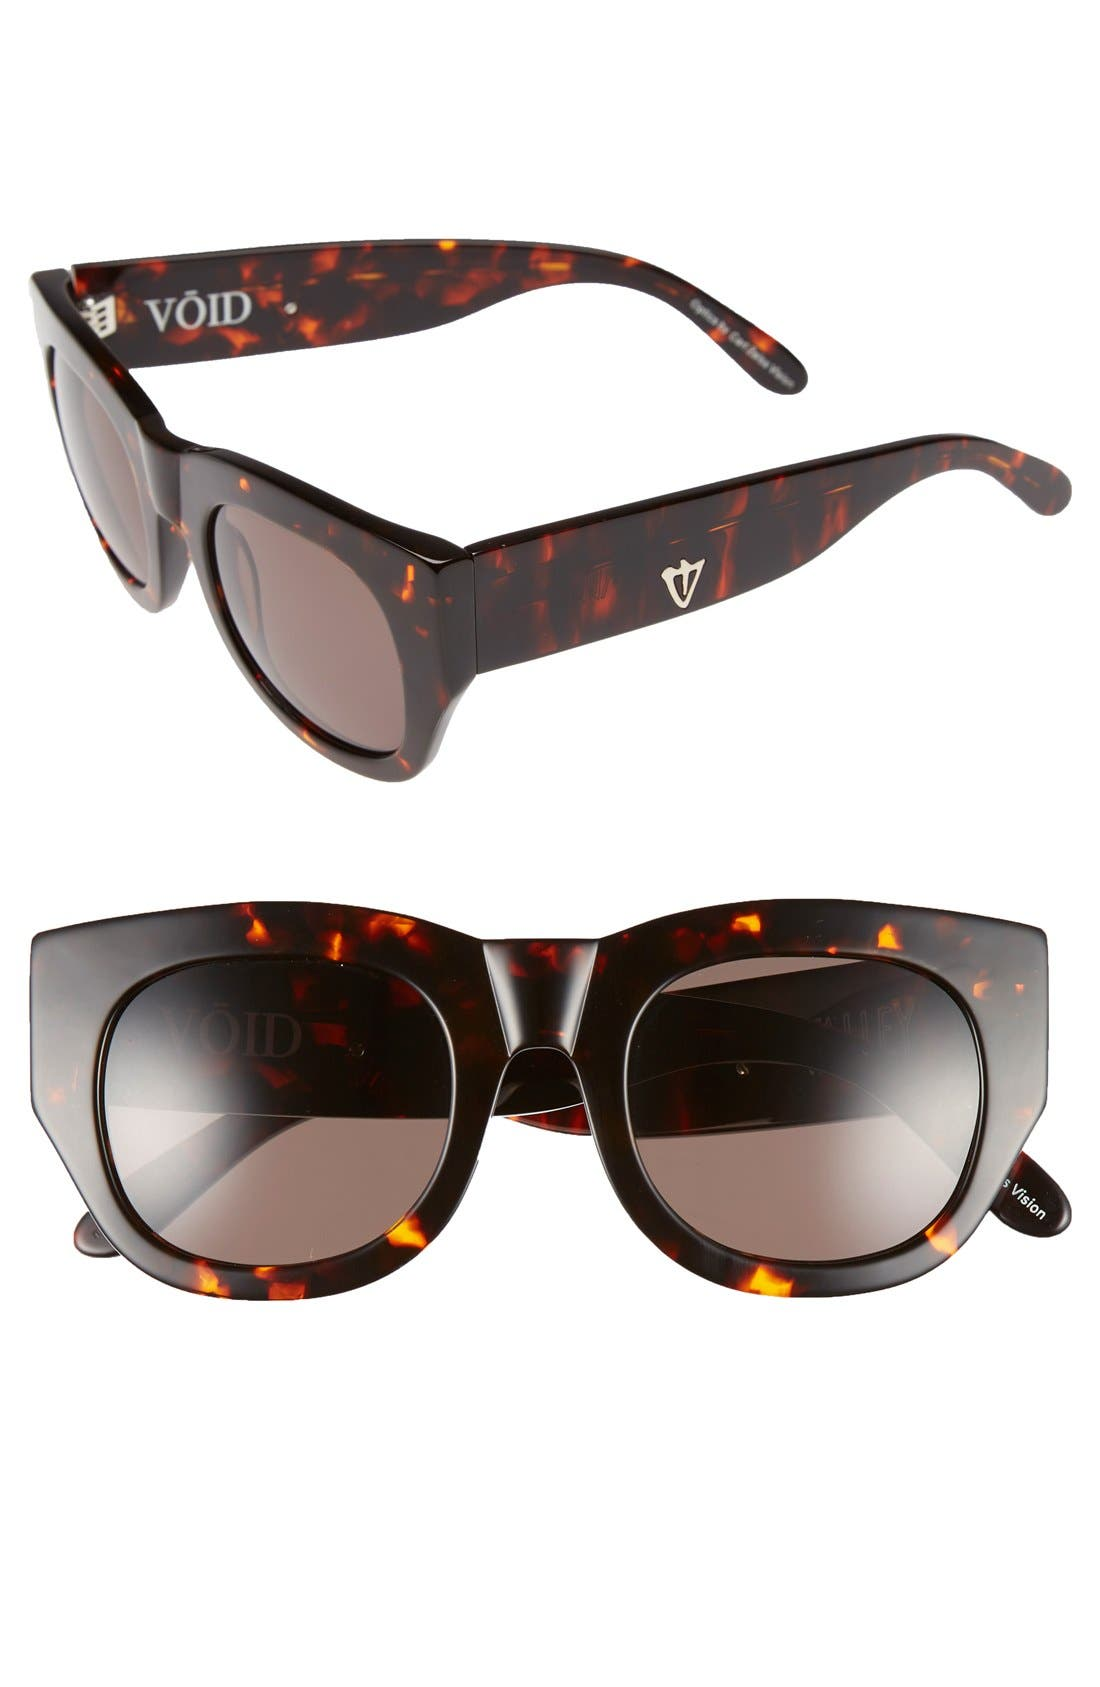 VALLEY Void 50mm Sunglasses